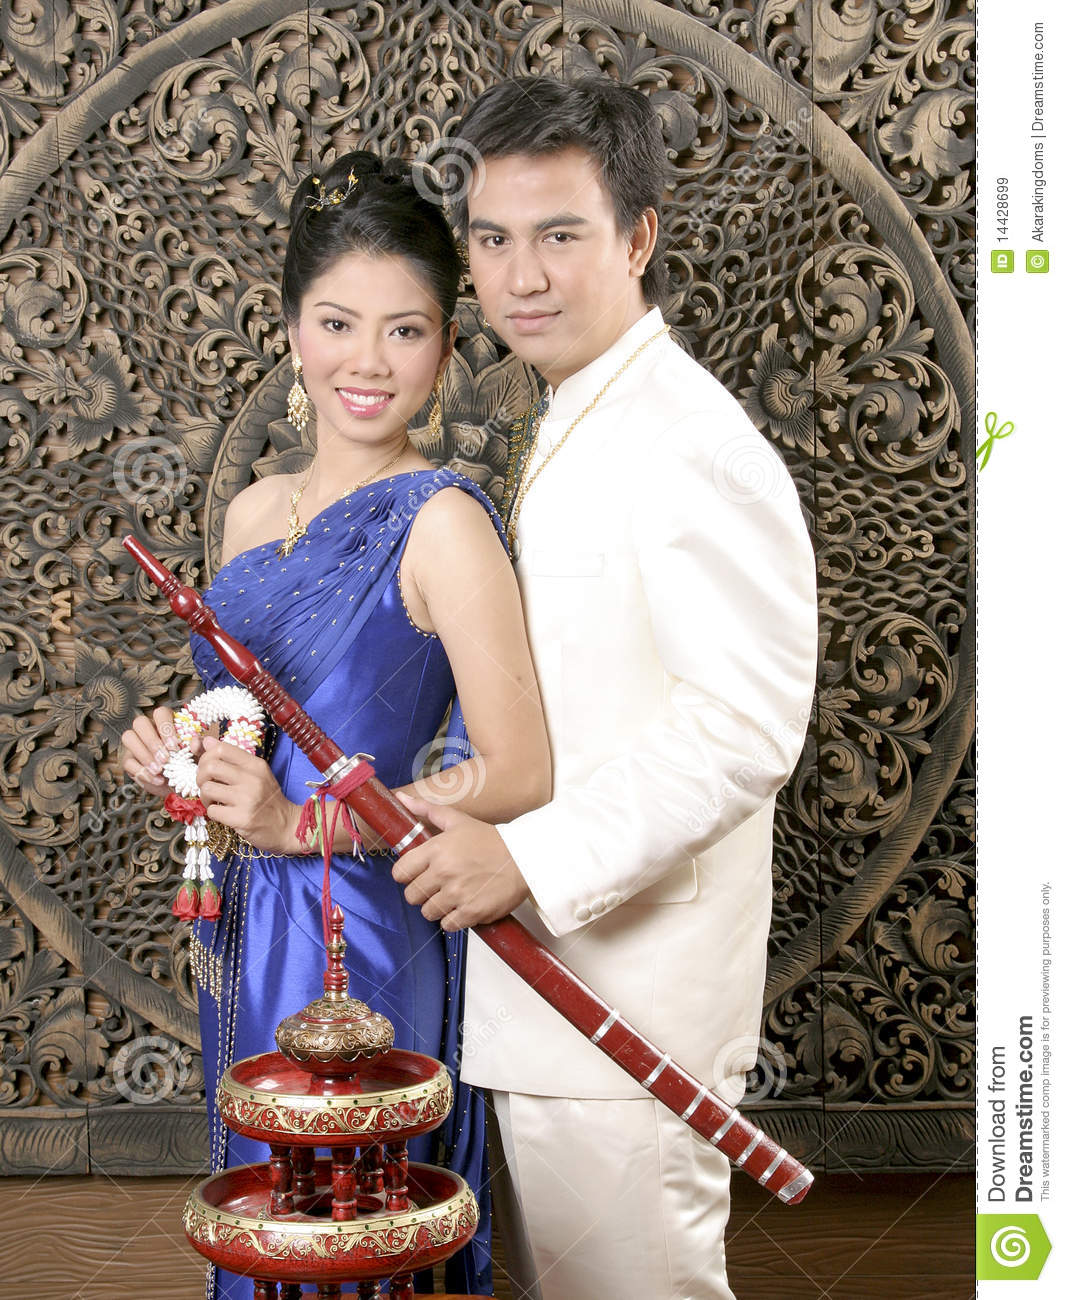 Thai Man And Woman In Silk Dress Stock Image - Image of